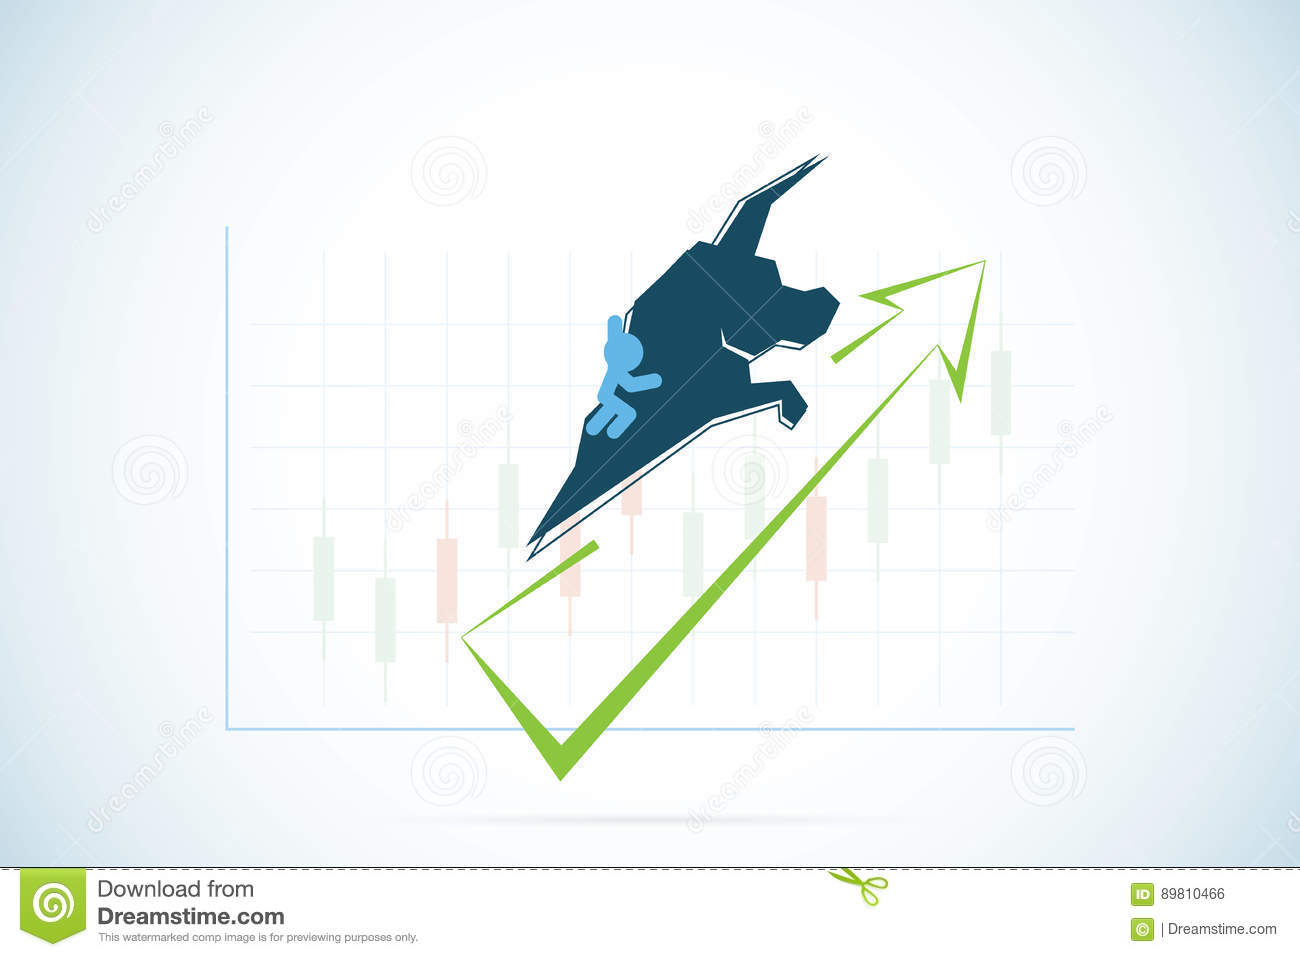 World stock exchange symbols choice image symbol and sign ideas bull symbol with green and candlestick chart stock market and bull symbol with green and candlestick buycottarizona